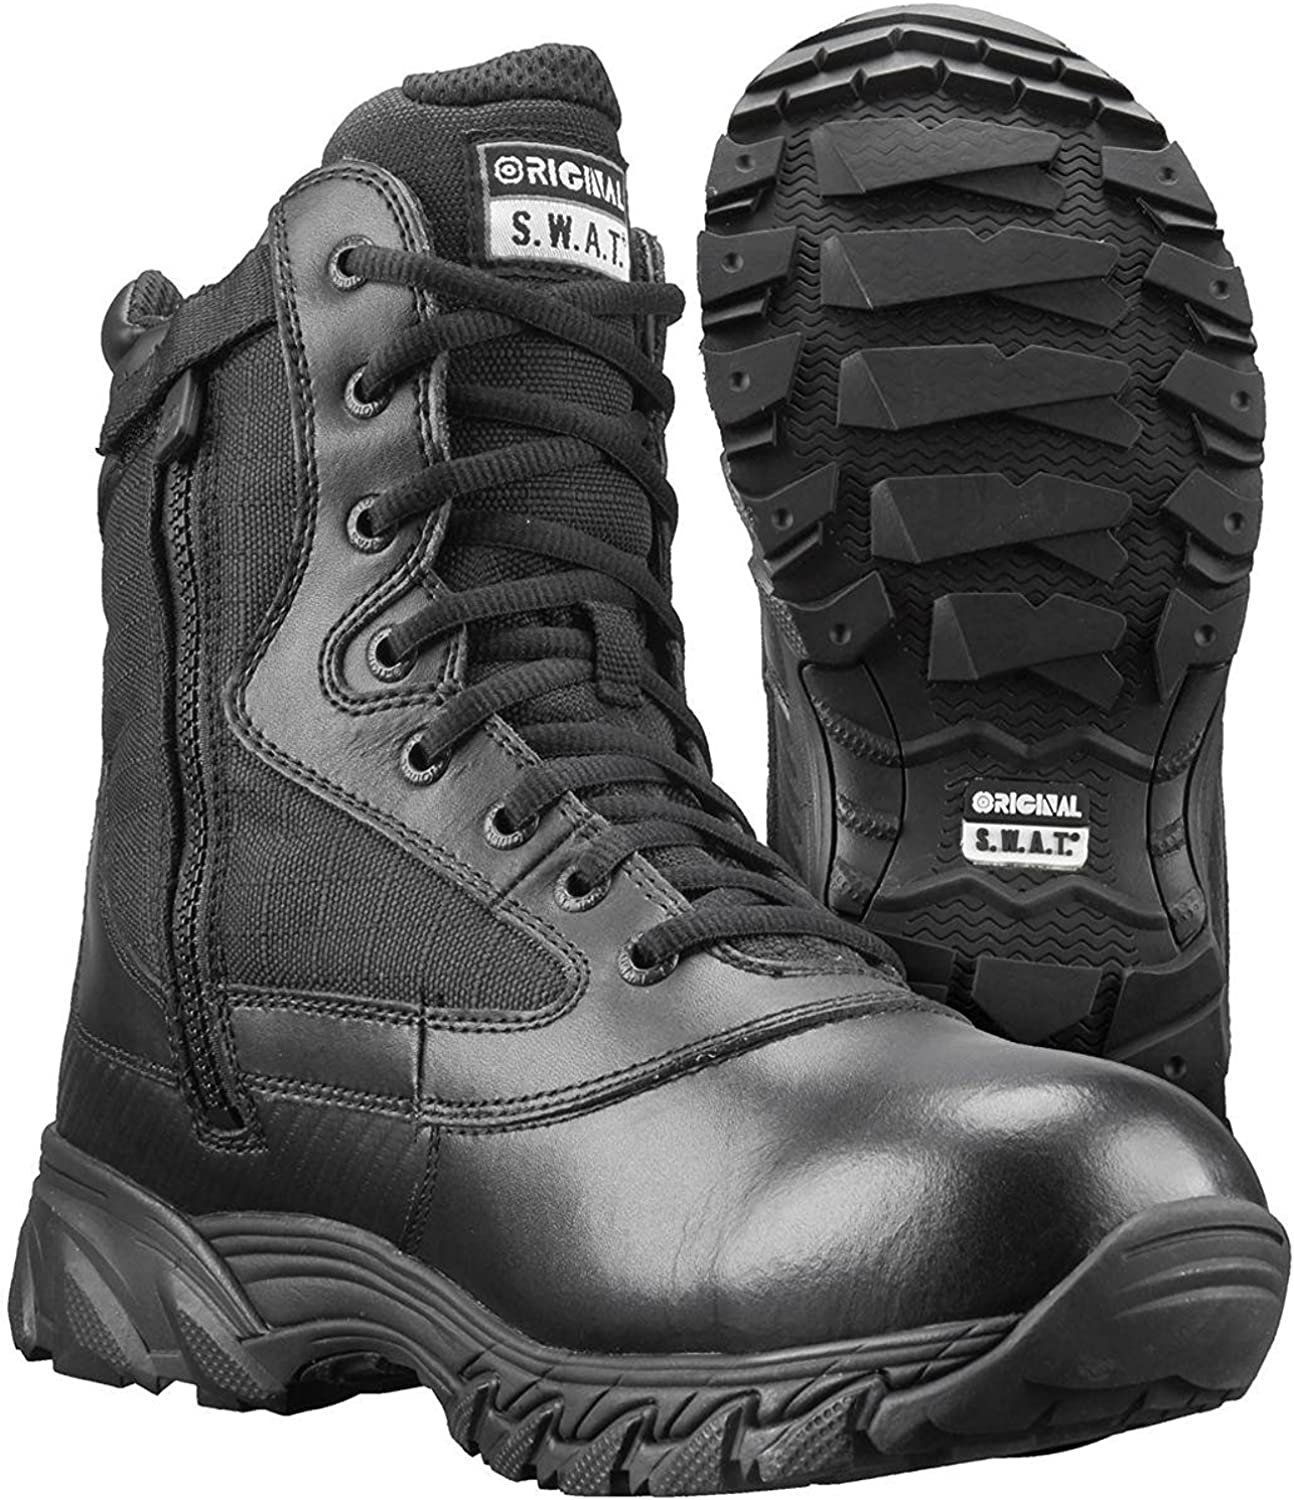 Original S.W.A.T. Men's Chase 9 Inch Waterproof Side-Zip Military and Tactical Boot